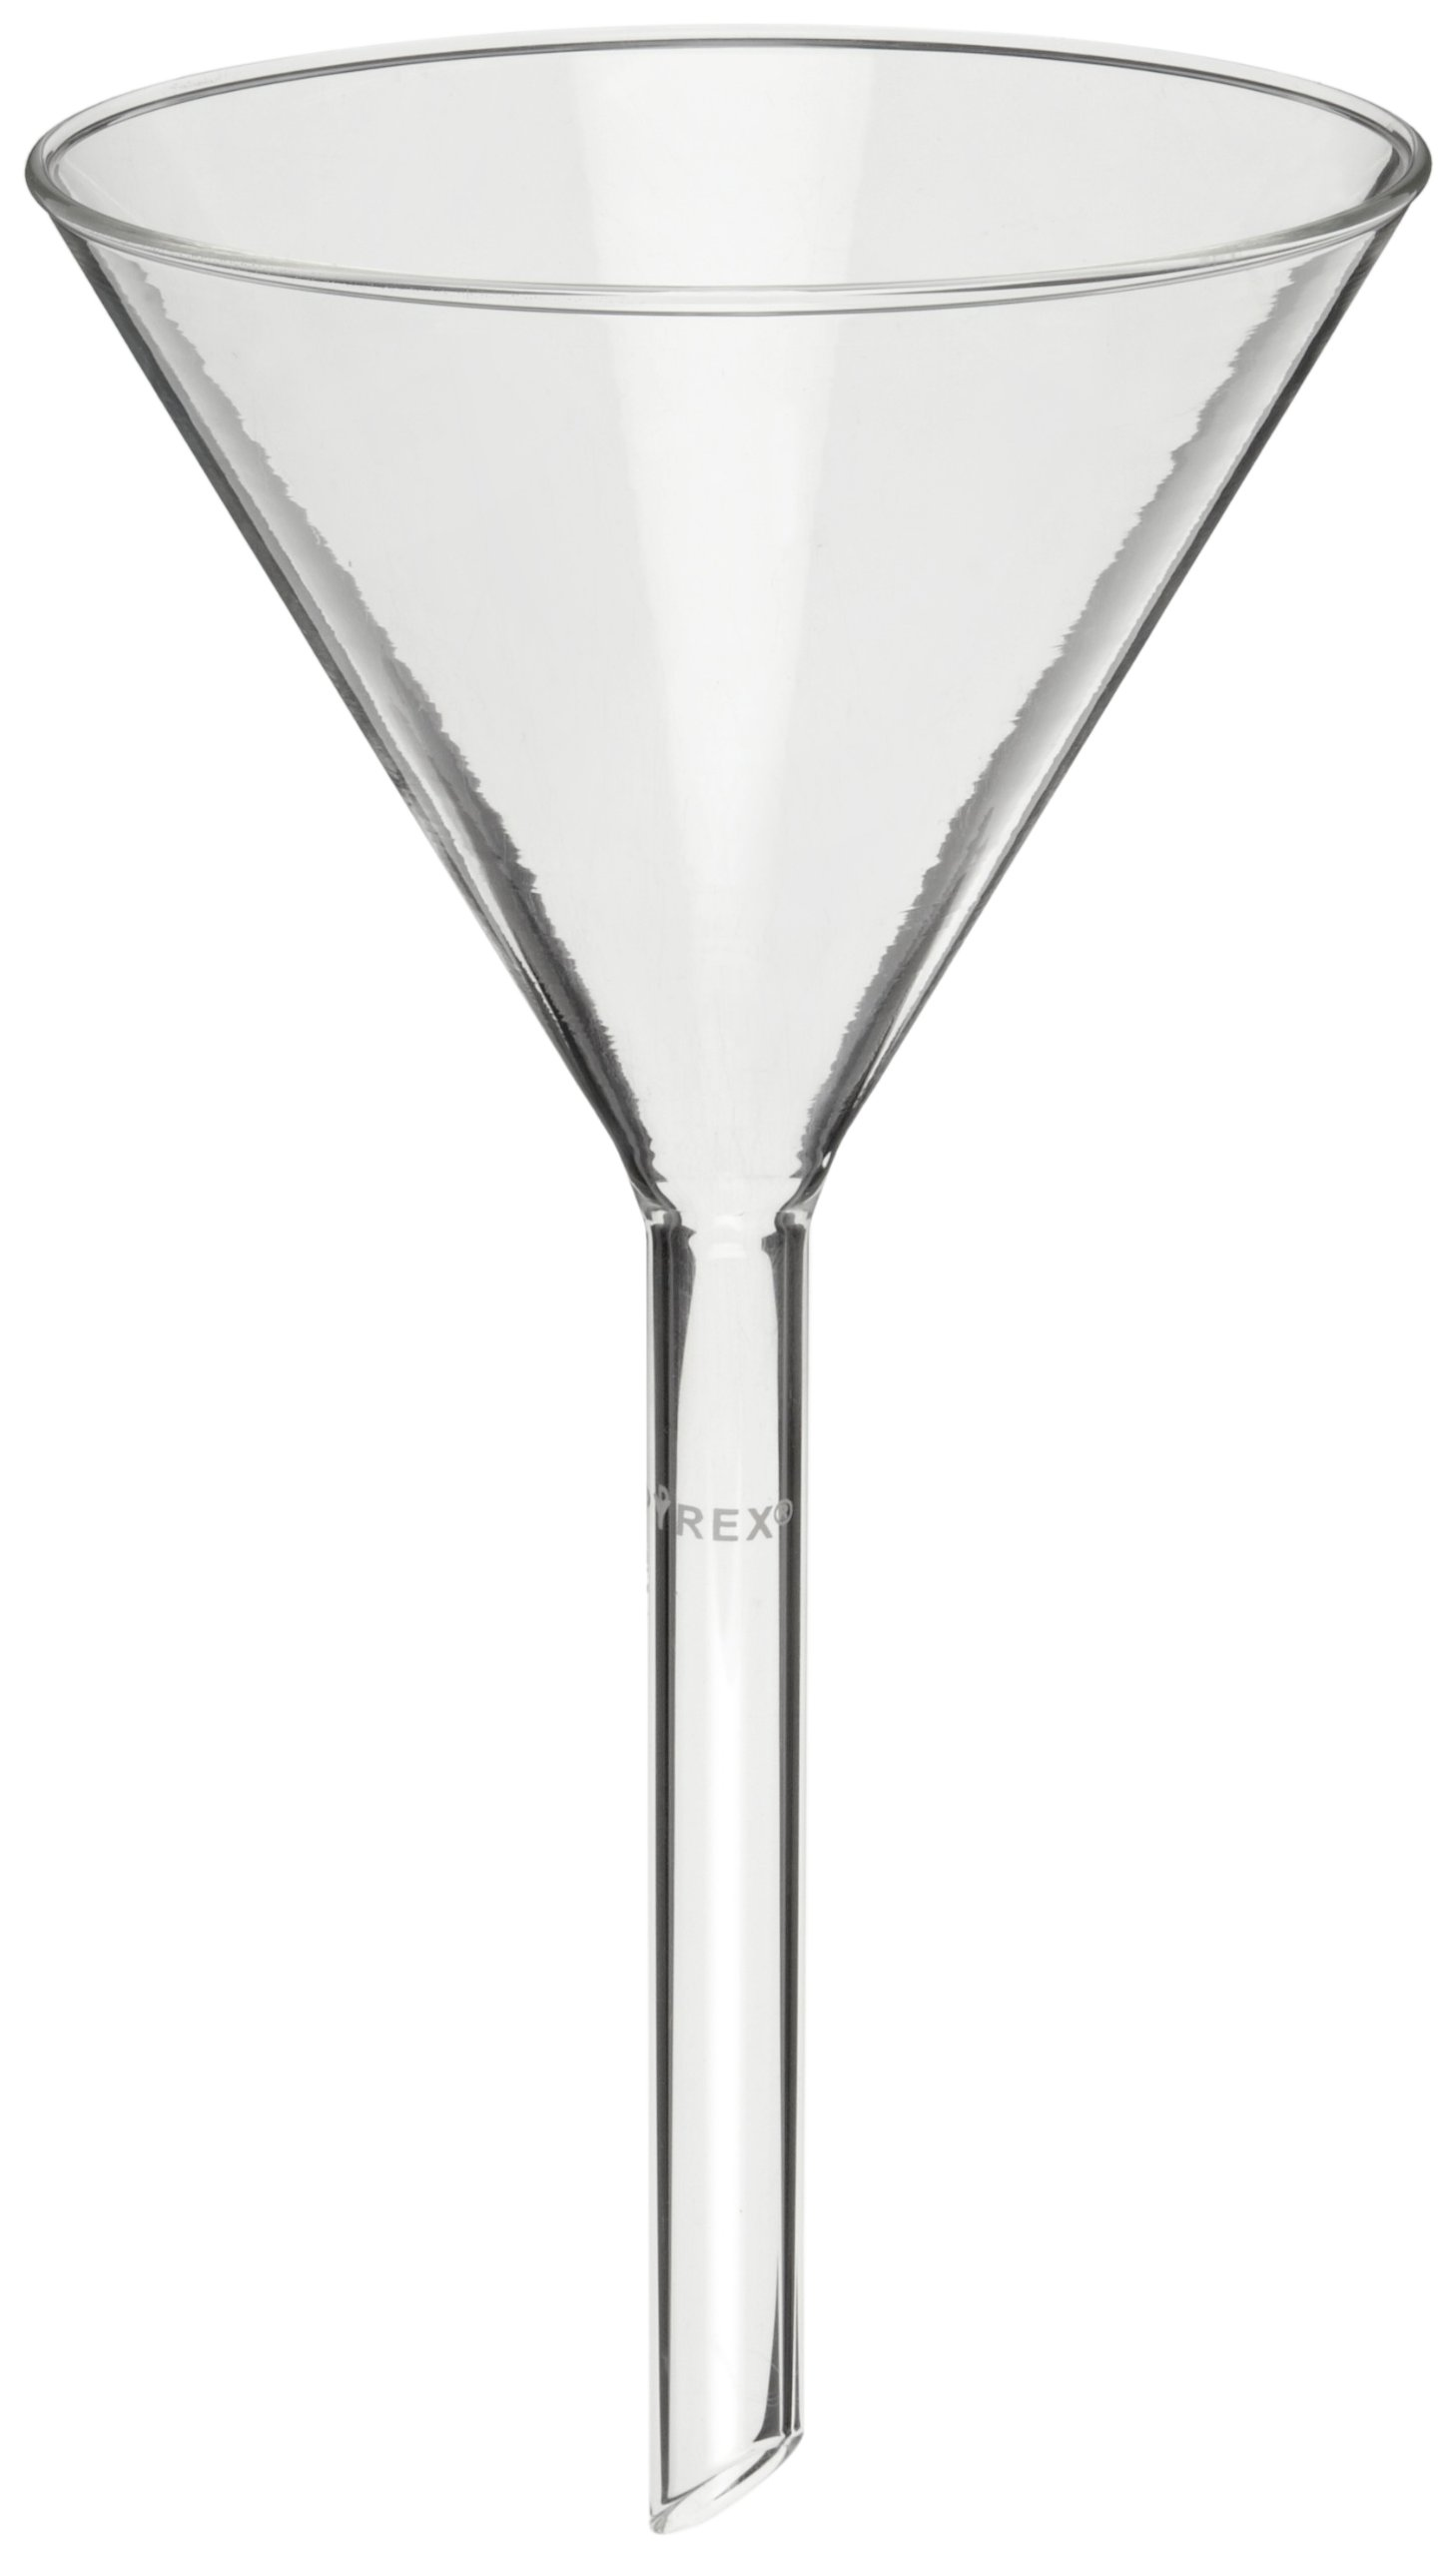 Corning Pyrex 6100-6 Borosilicate Glass Plain Funnel, with Long Wide Stem, 147mm Diameter (Pack of 6) by Corning